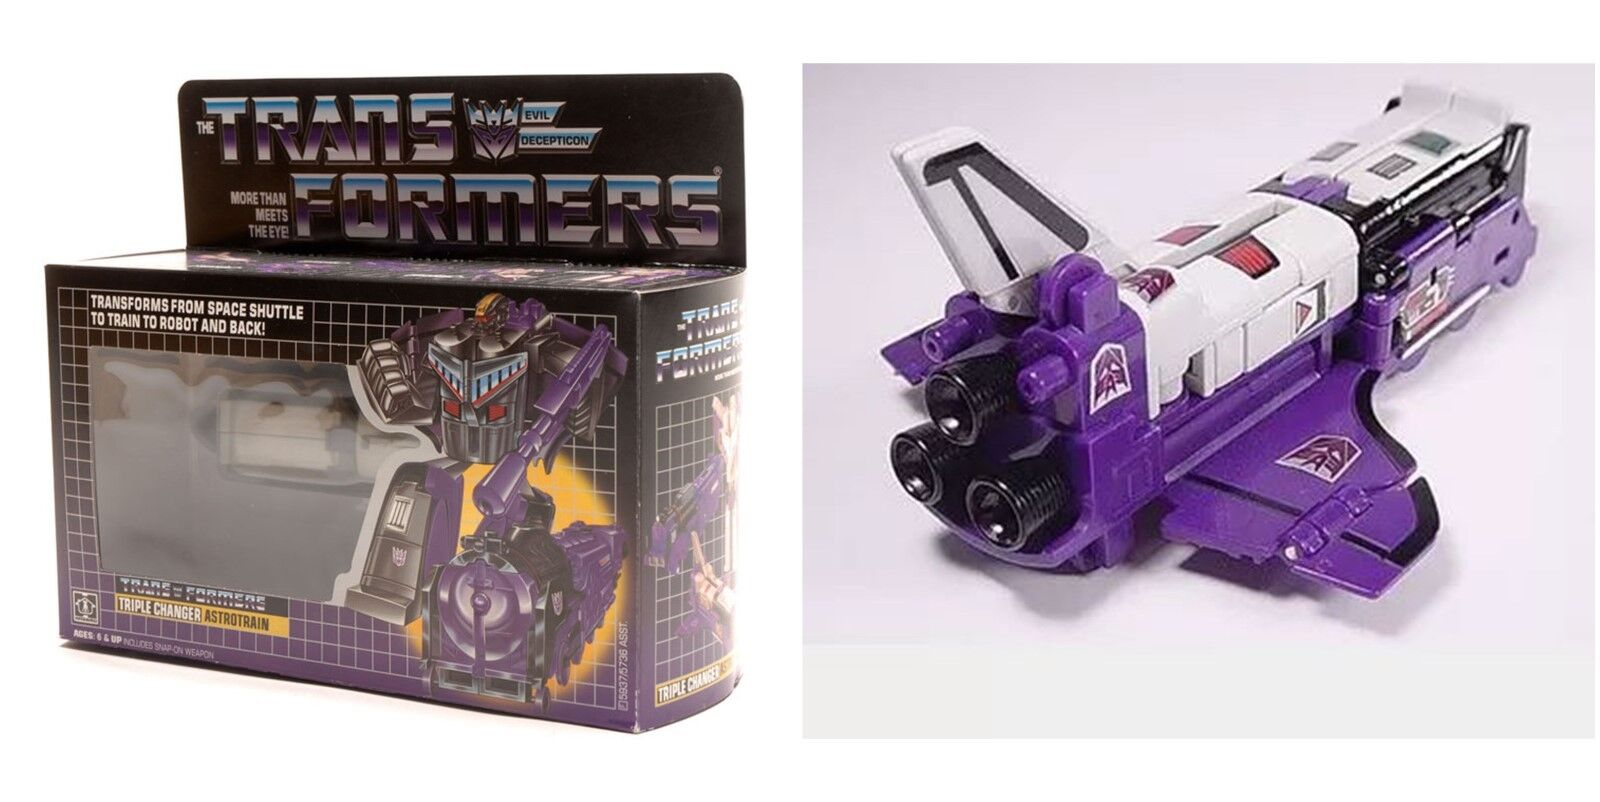 TRIPLE CHANGER ASTredRAIN Reissue TRANSFORMERS ACTION Christmas Gift